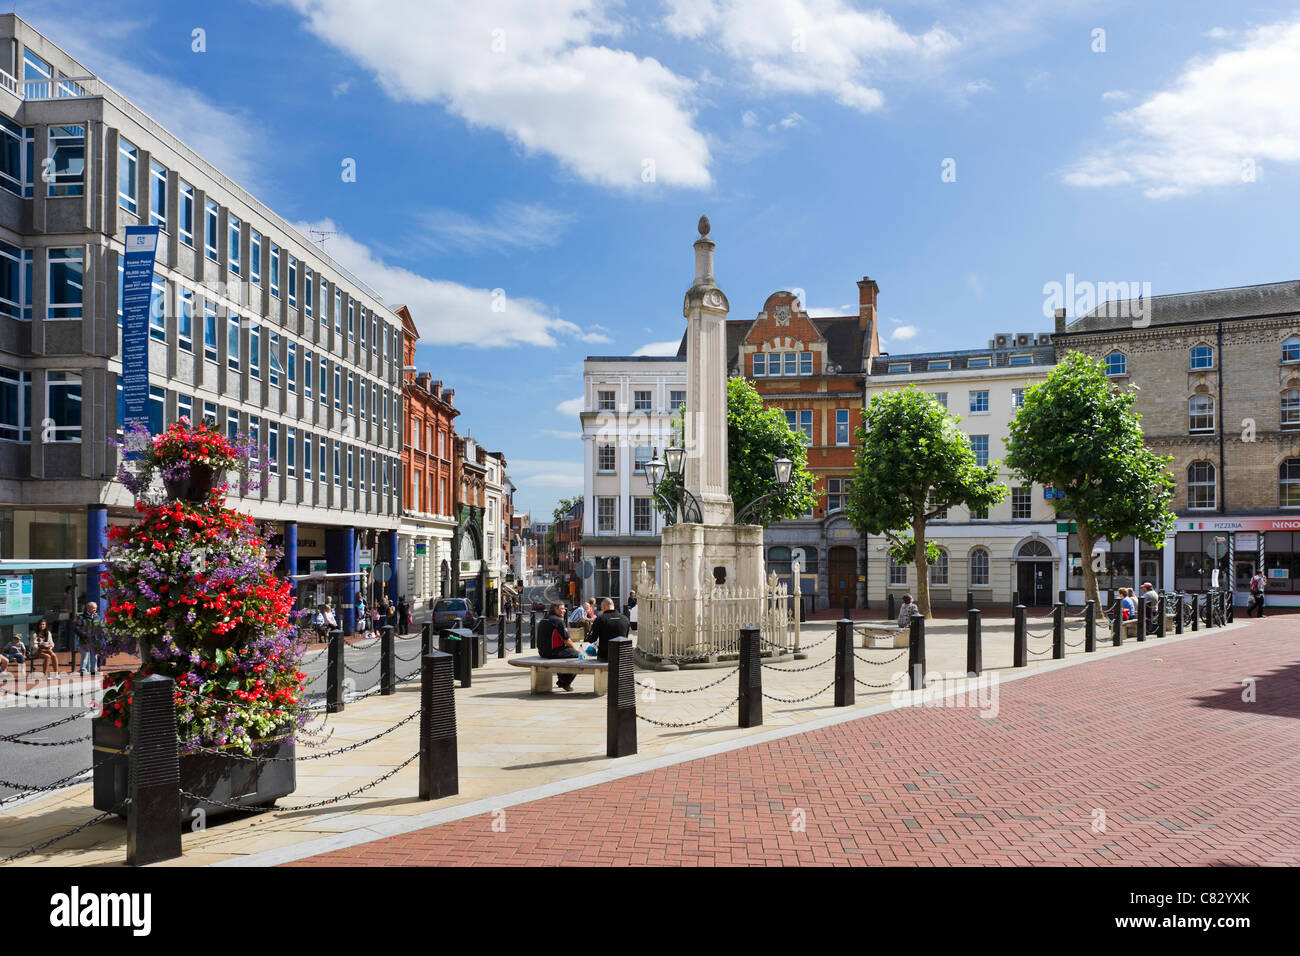 The Market Place in the city centre, Reading, Berkshire, England, UK - Stock Image